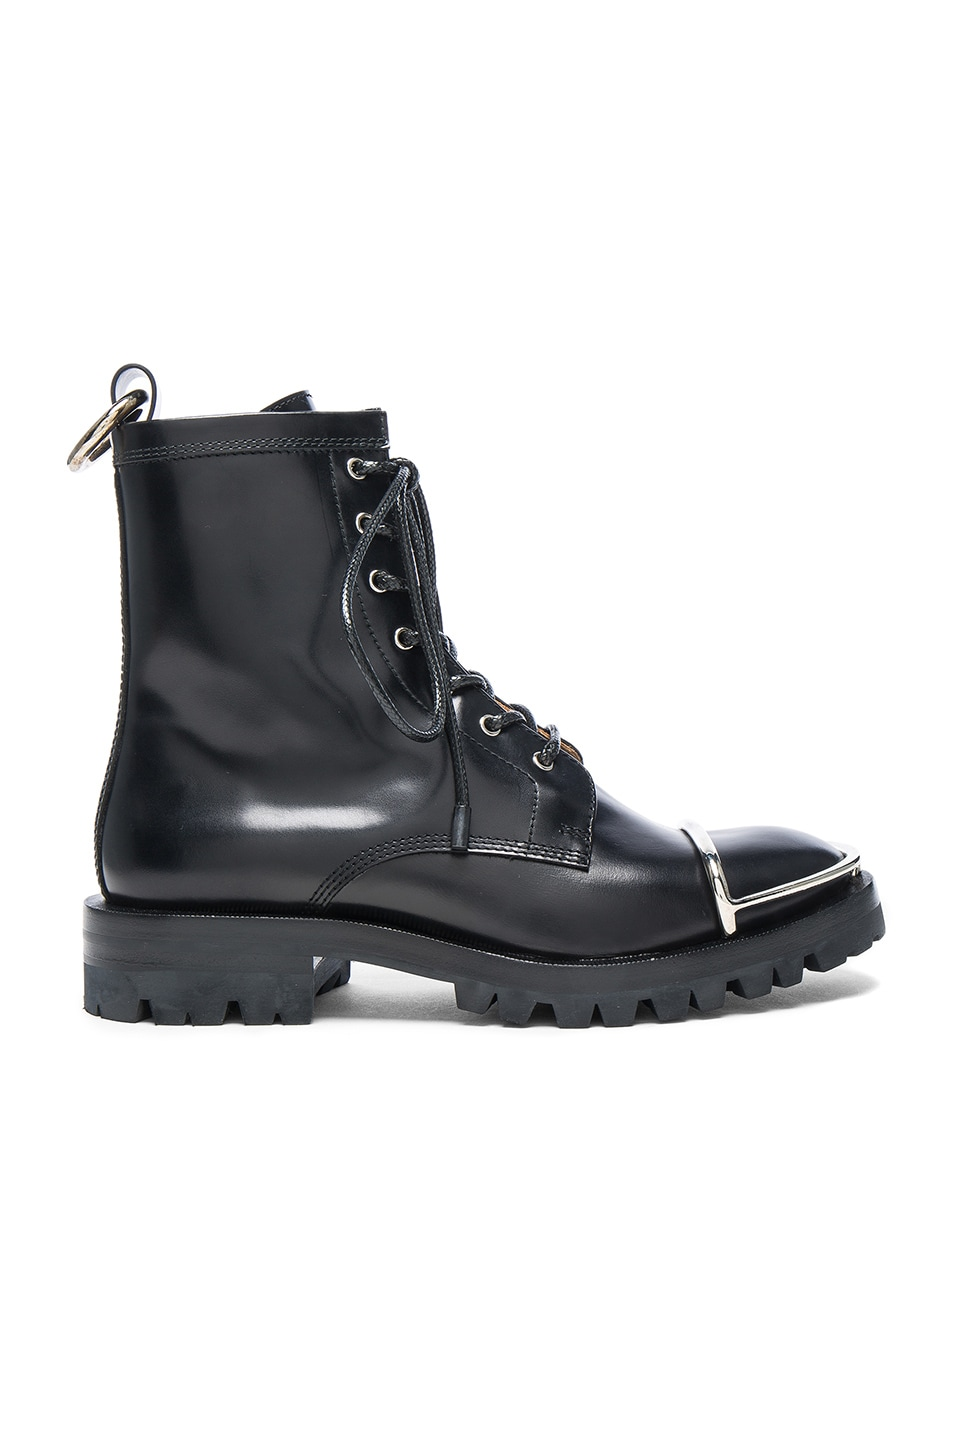 Image 1 of Alexander Wang Lyndon Boots in Black